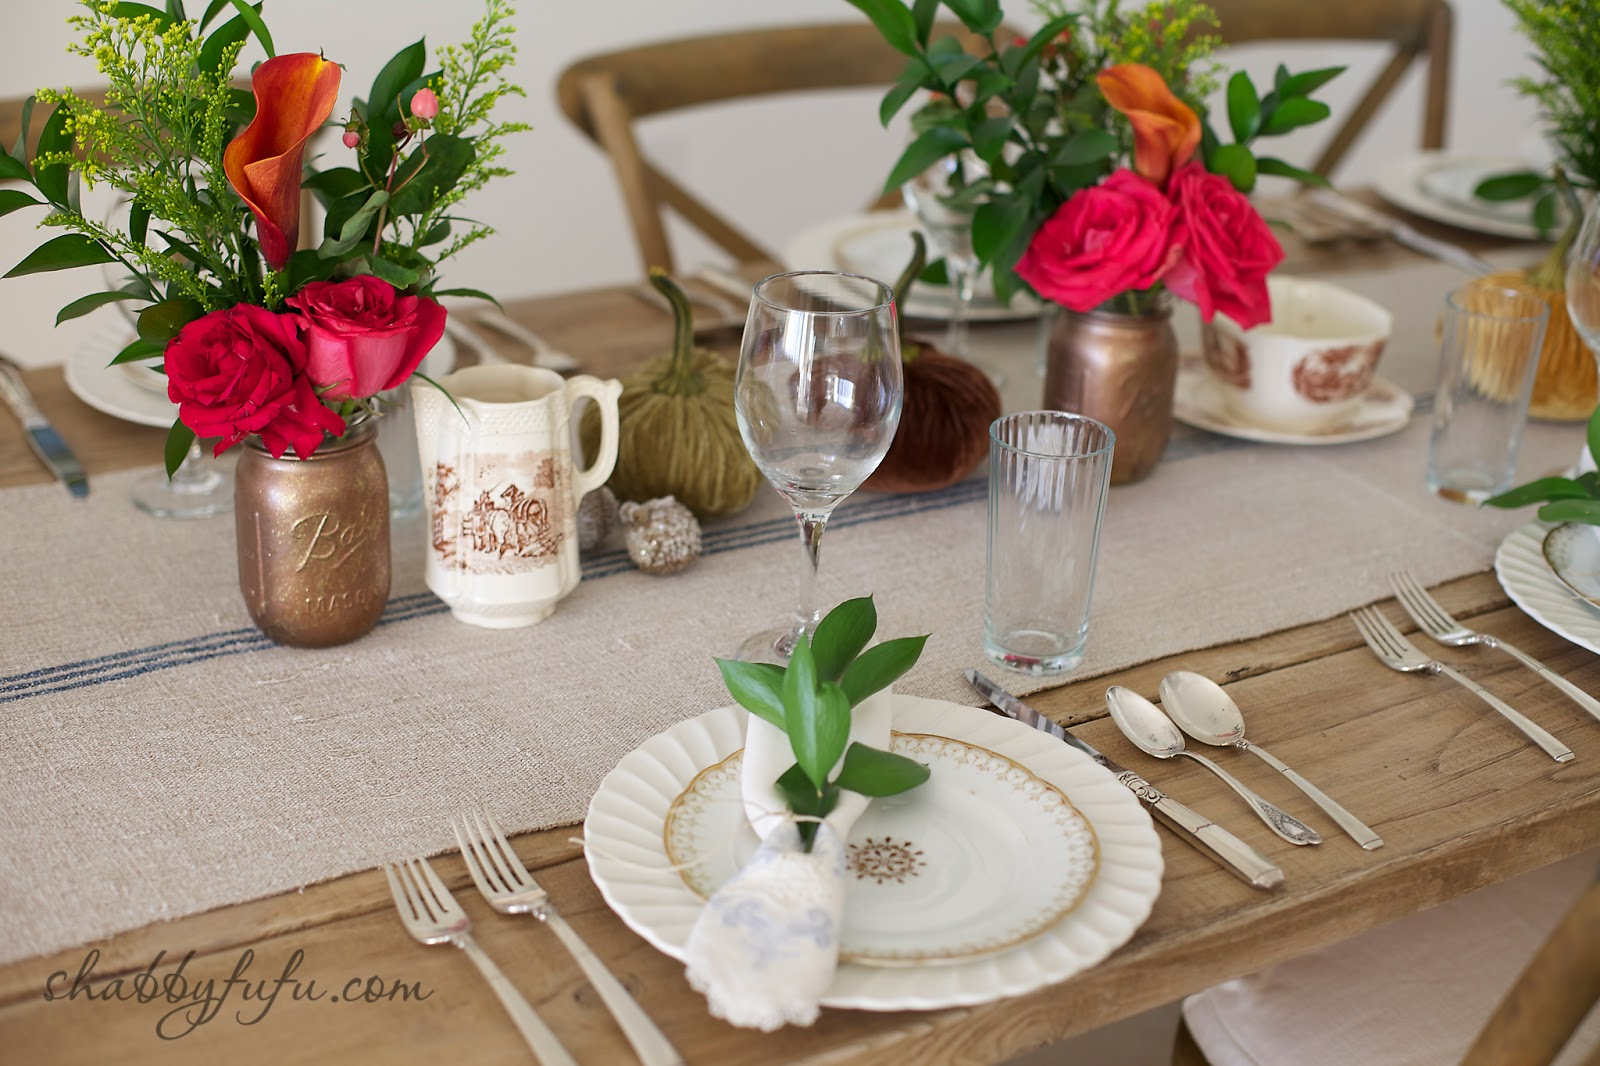 Thanksgiving Beach House decor tablescape with bright flower arrangements and white china